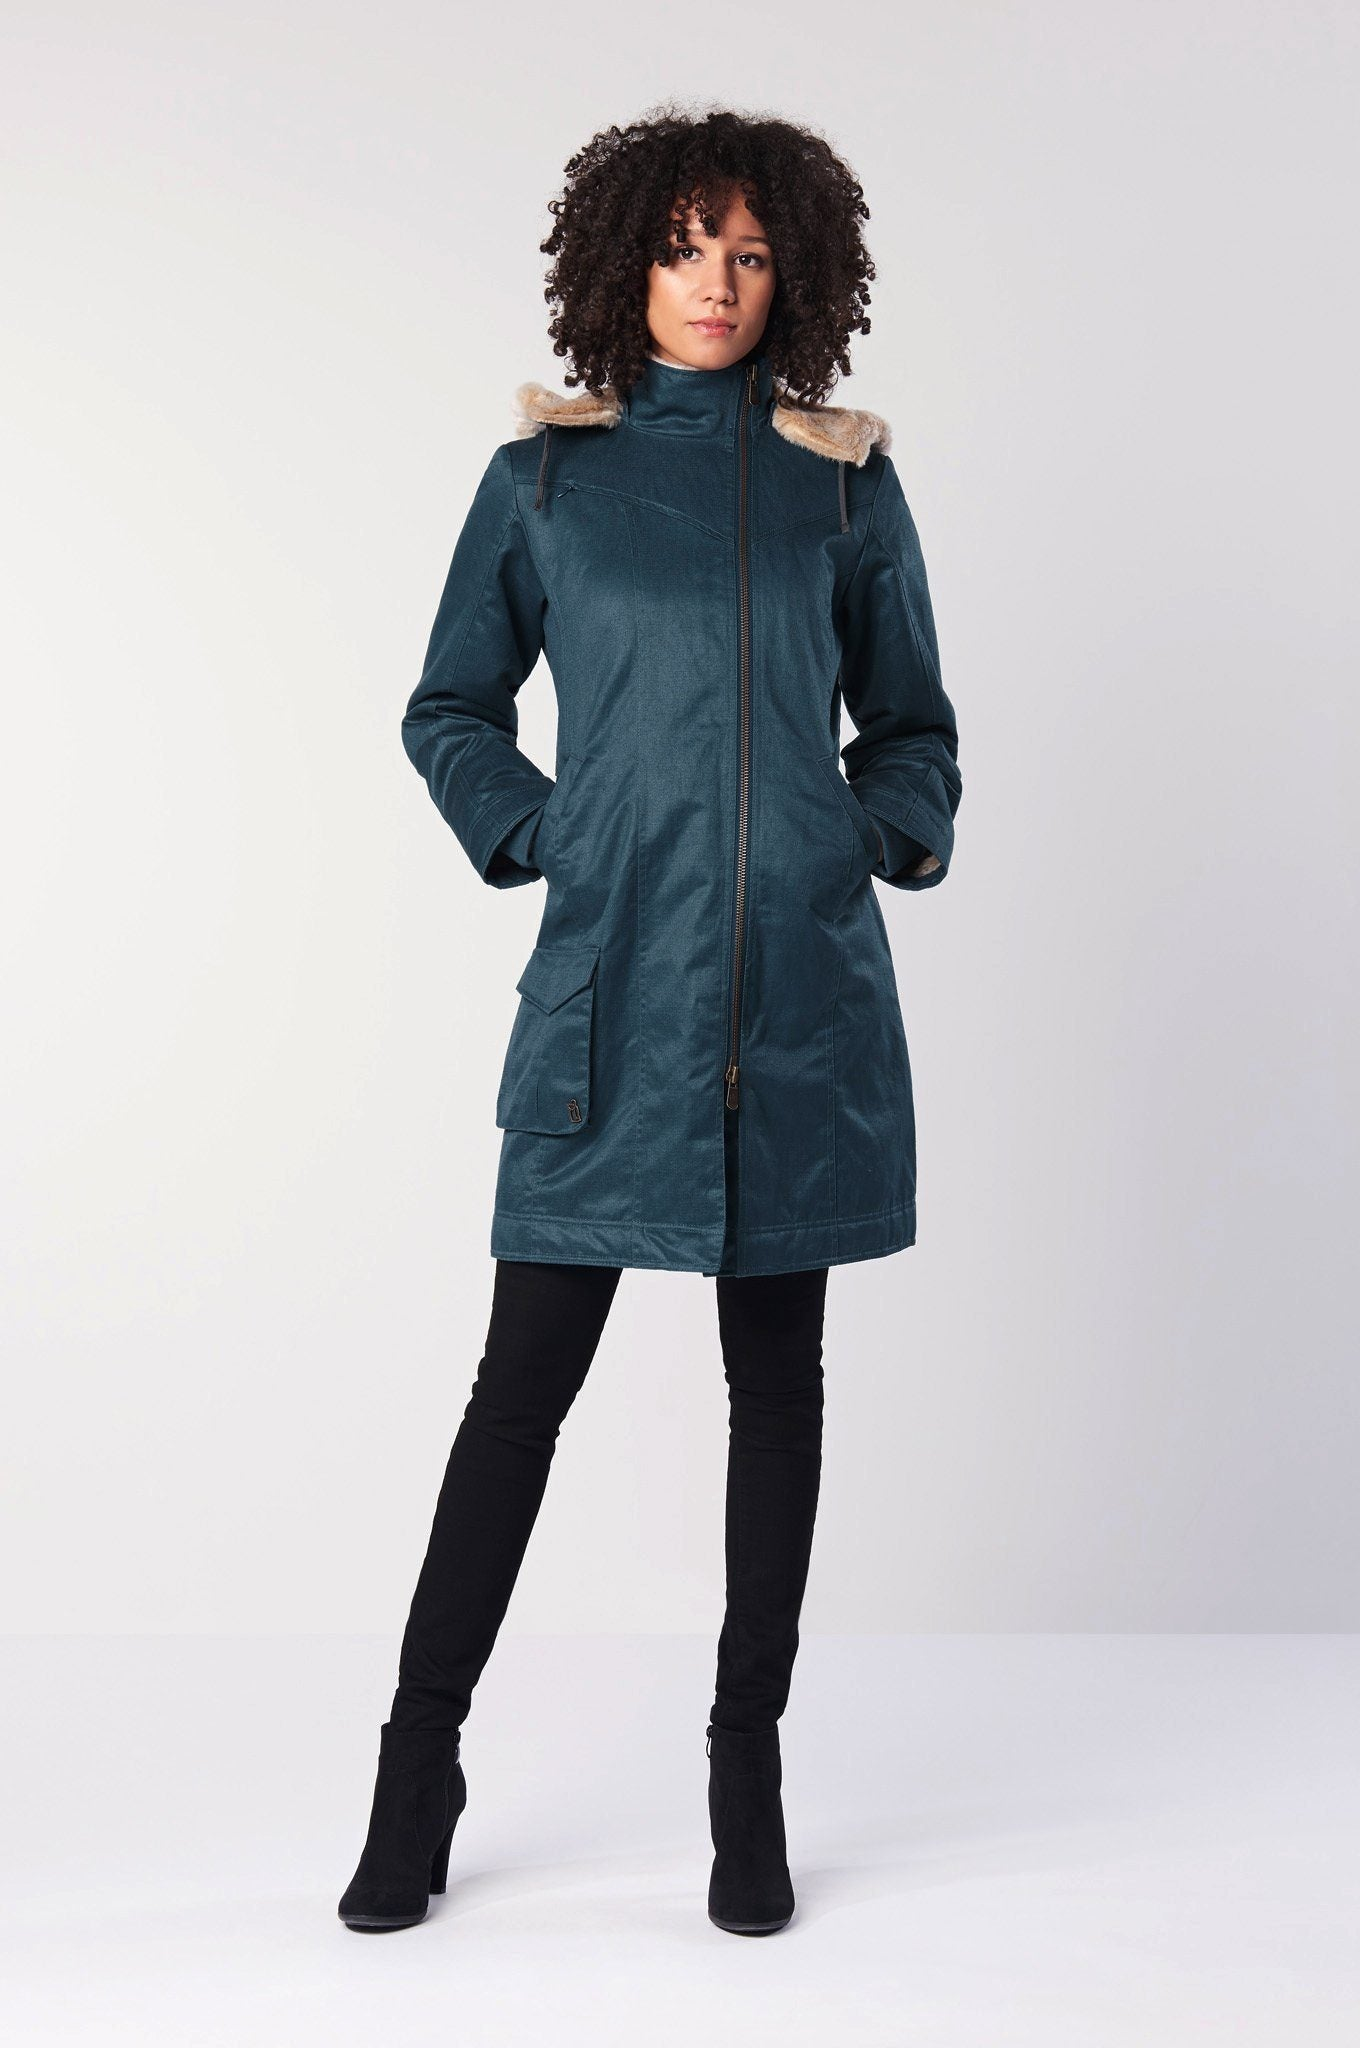 HEMP Vegan Coat Blue - Komodo Fashion